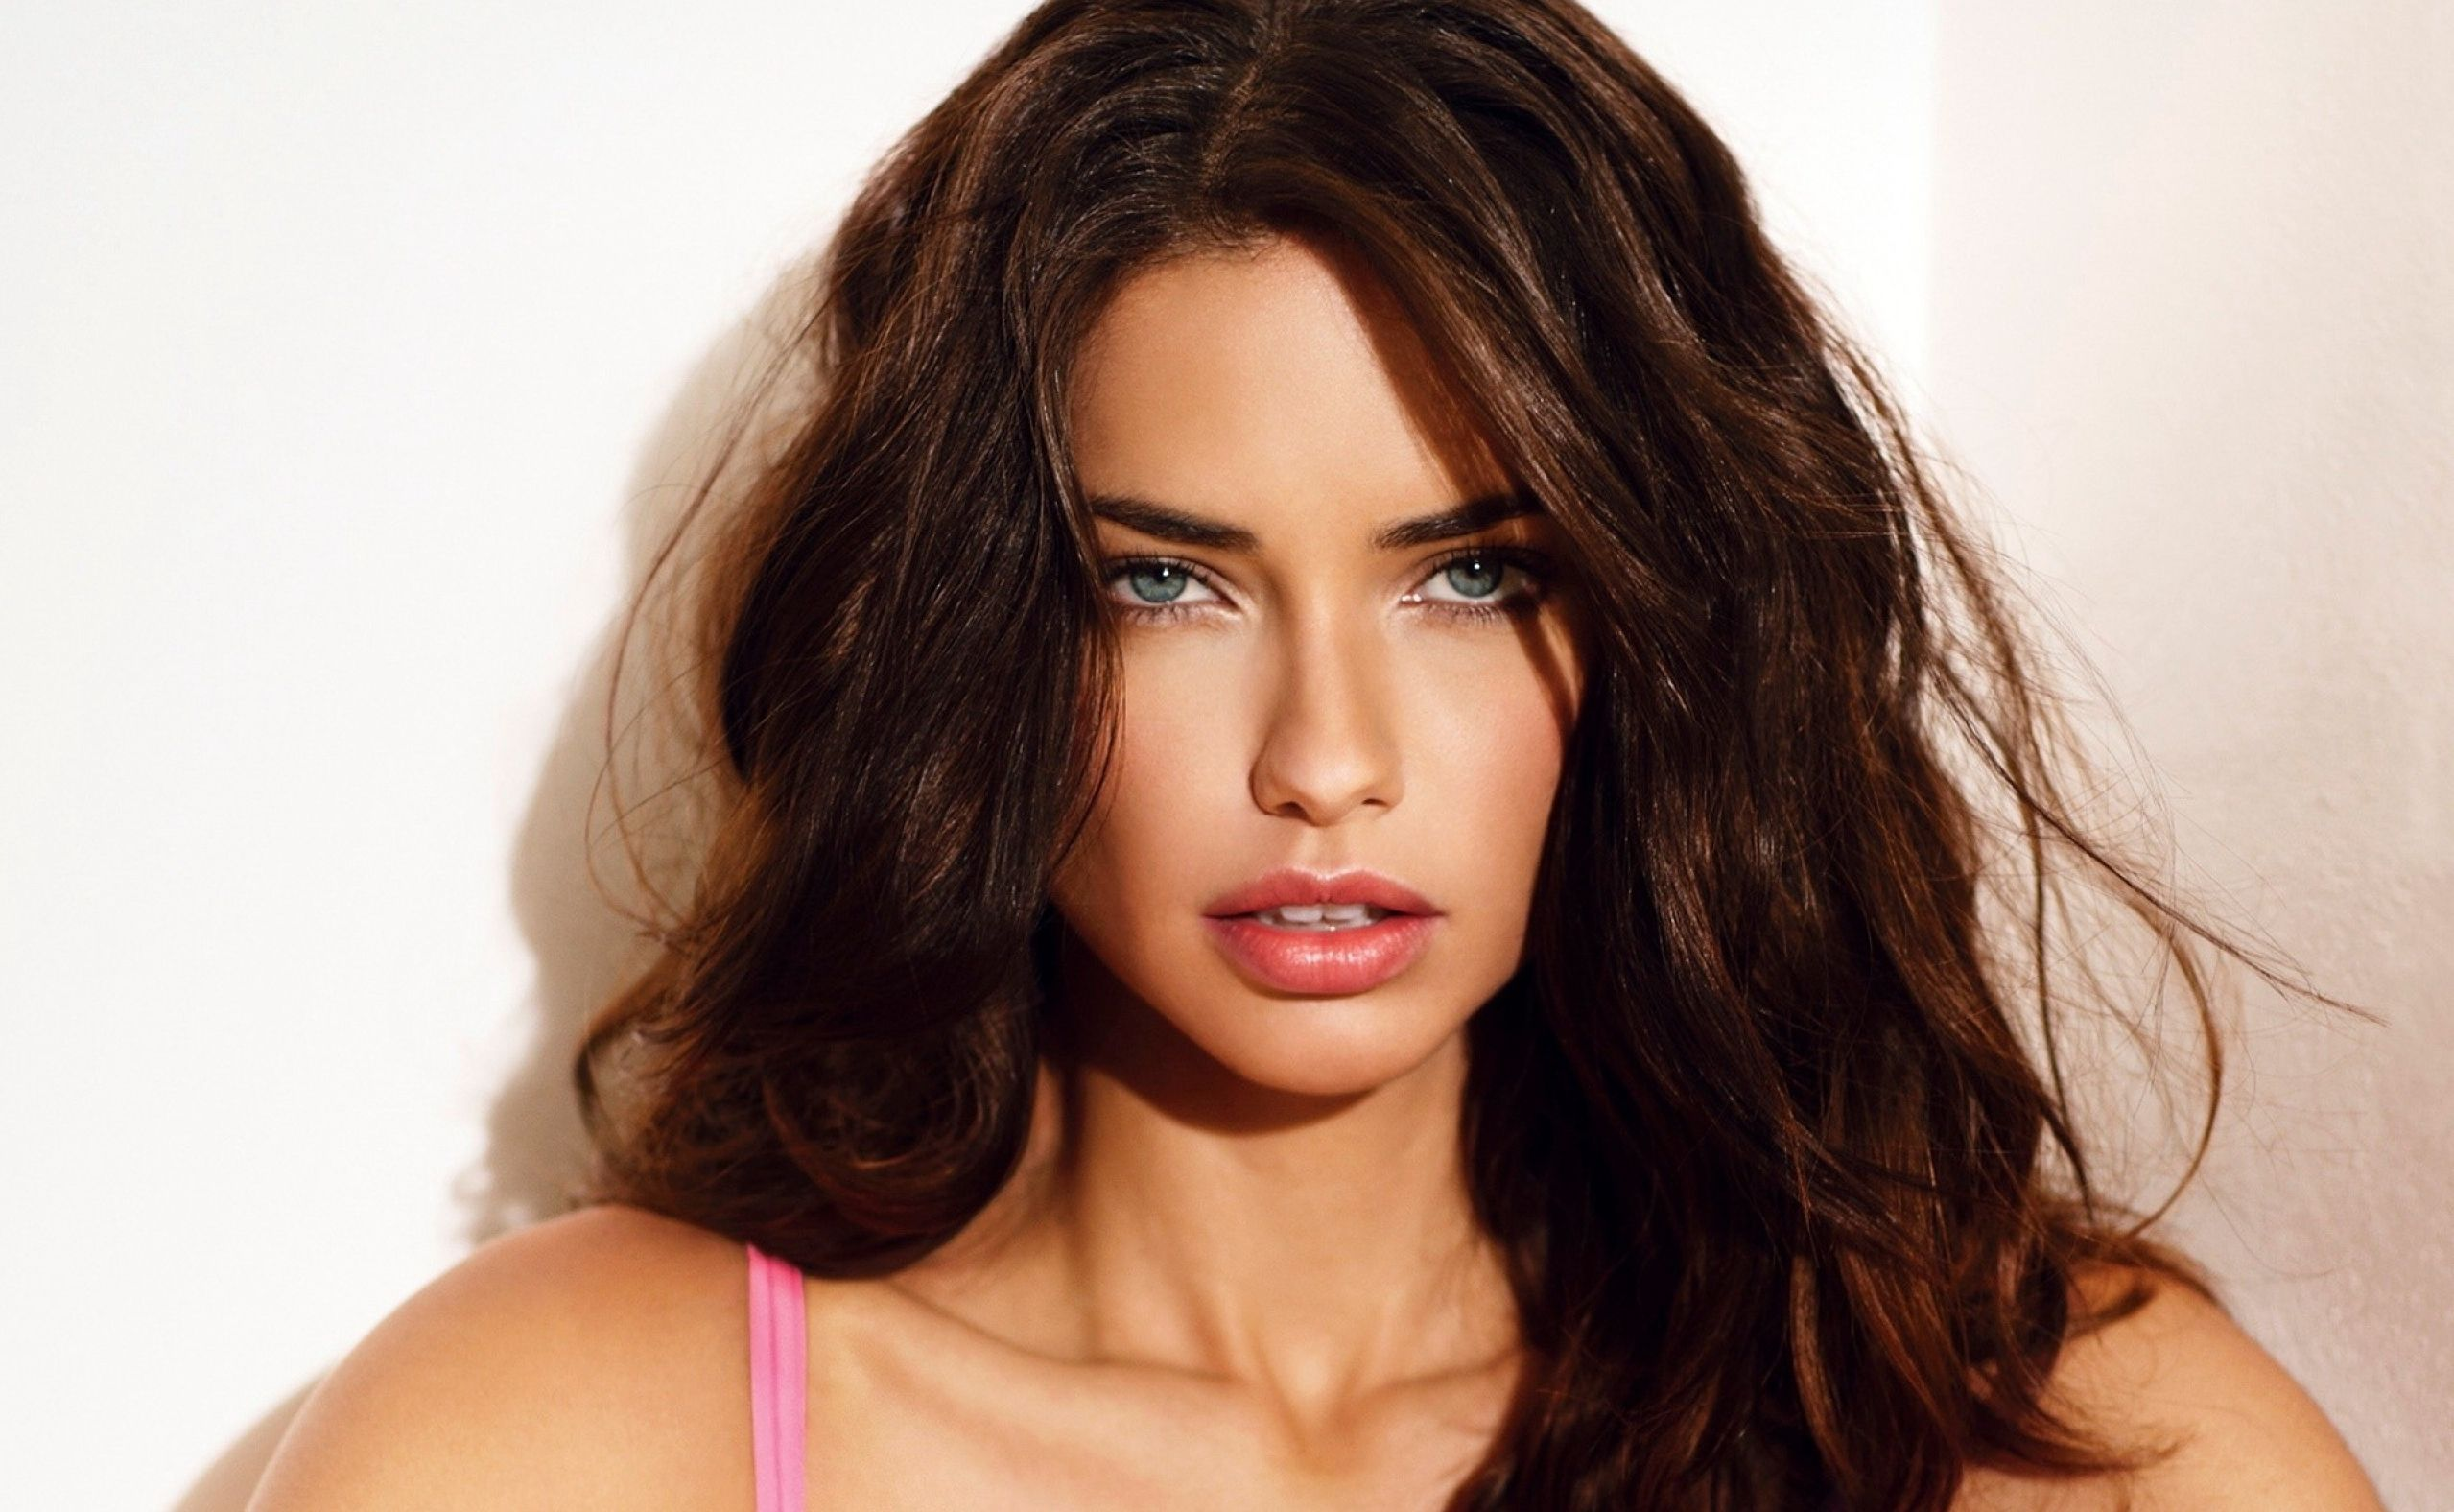 Adrianalimawallpaperfrommetacafe 1024768 adrianalimawallpaperfrommetacafe 1024768 photographyl kinds ofem pinterest adriana lima wallpaper adriana lima and lima voltagebd Image collections